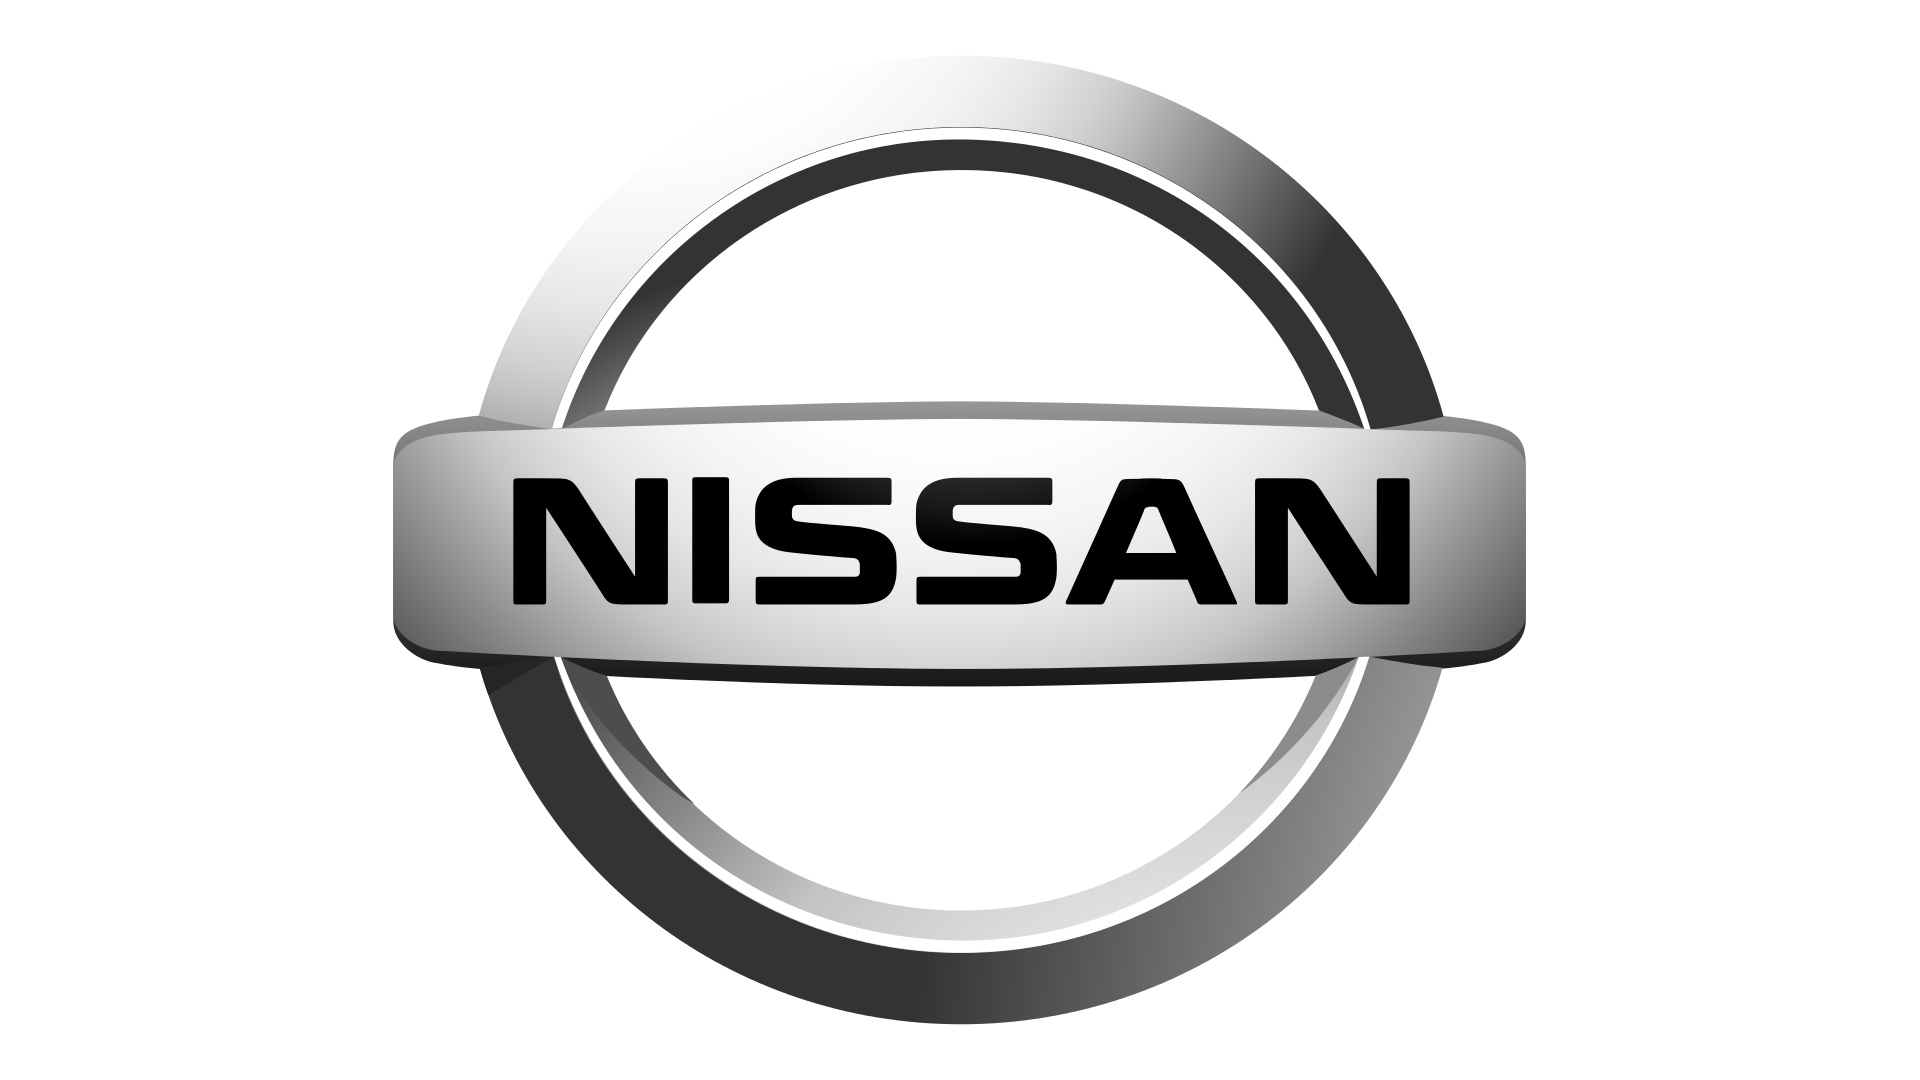 Nissan PNG - 36280